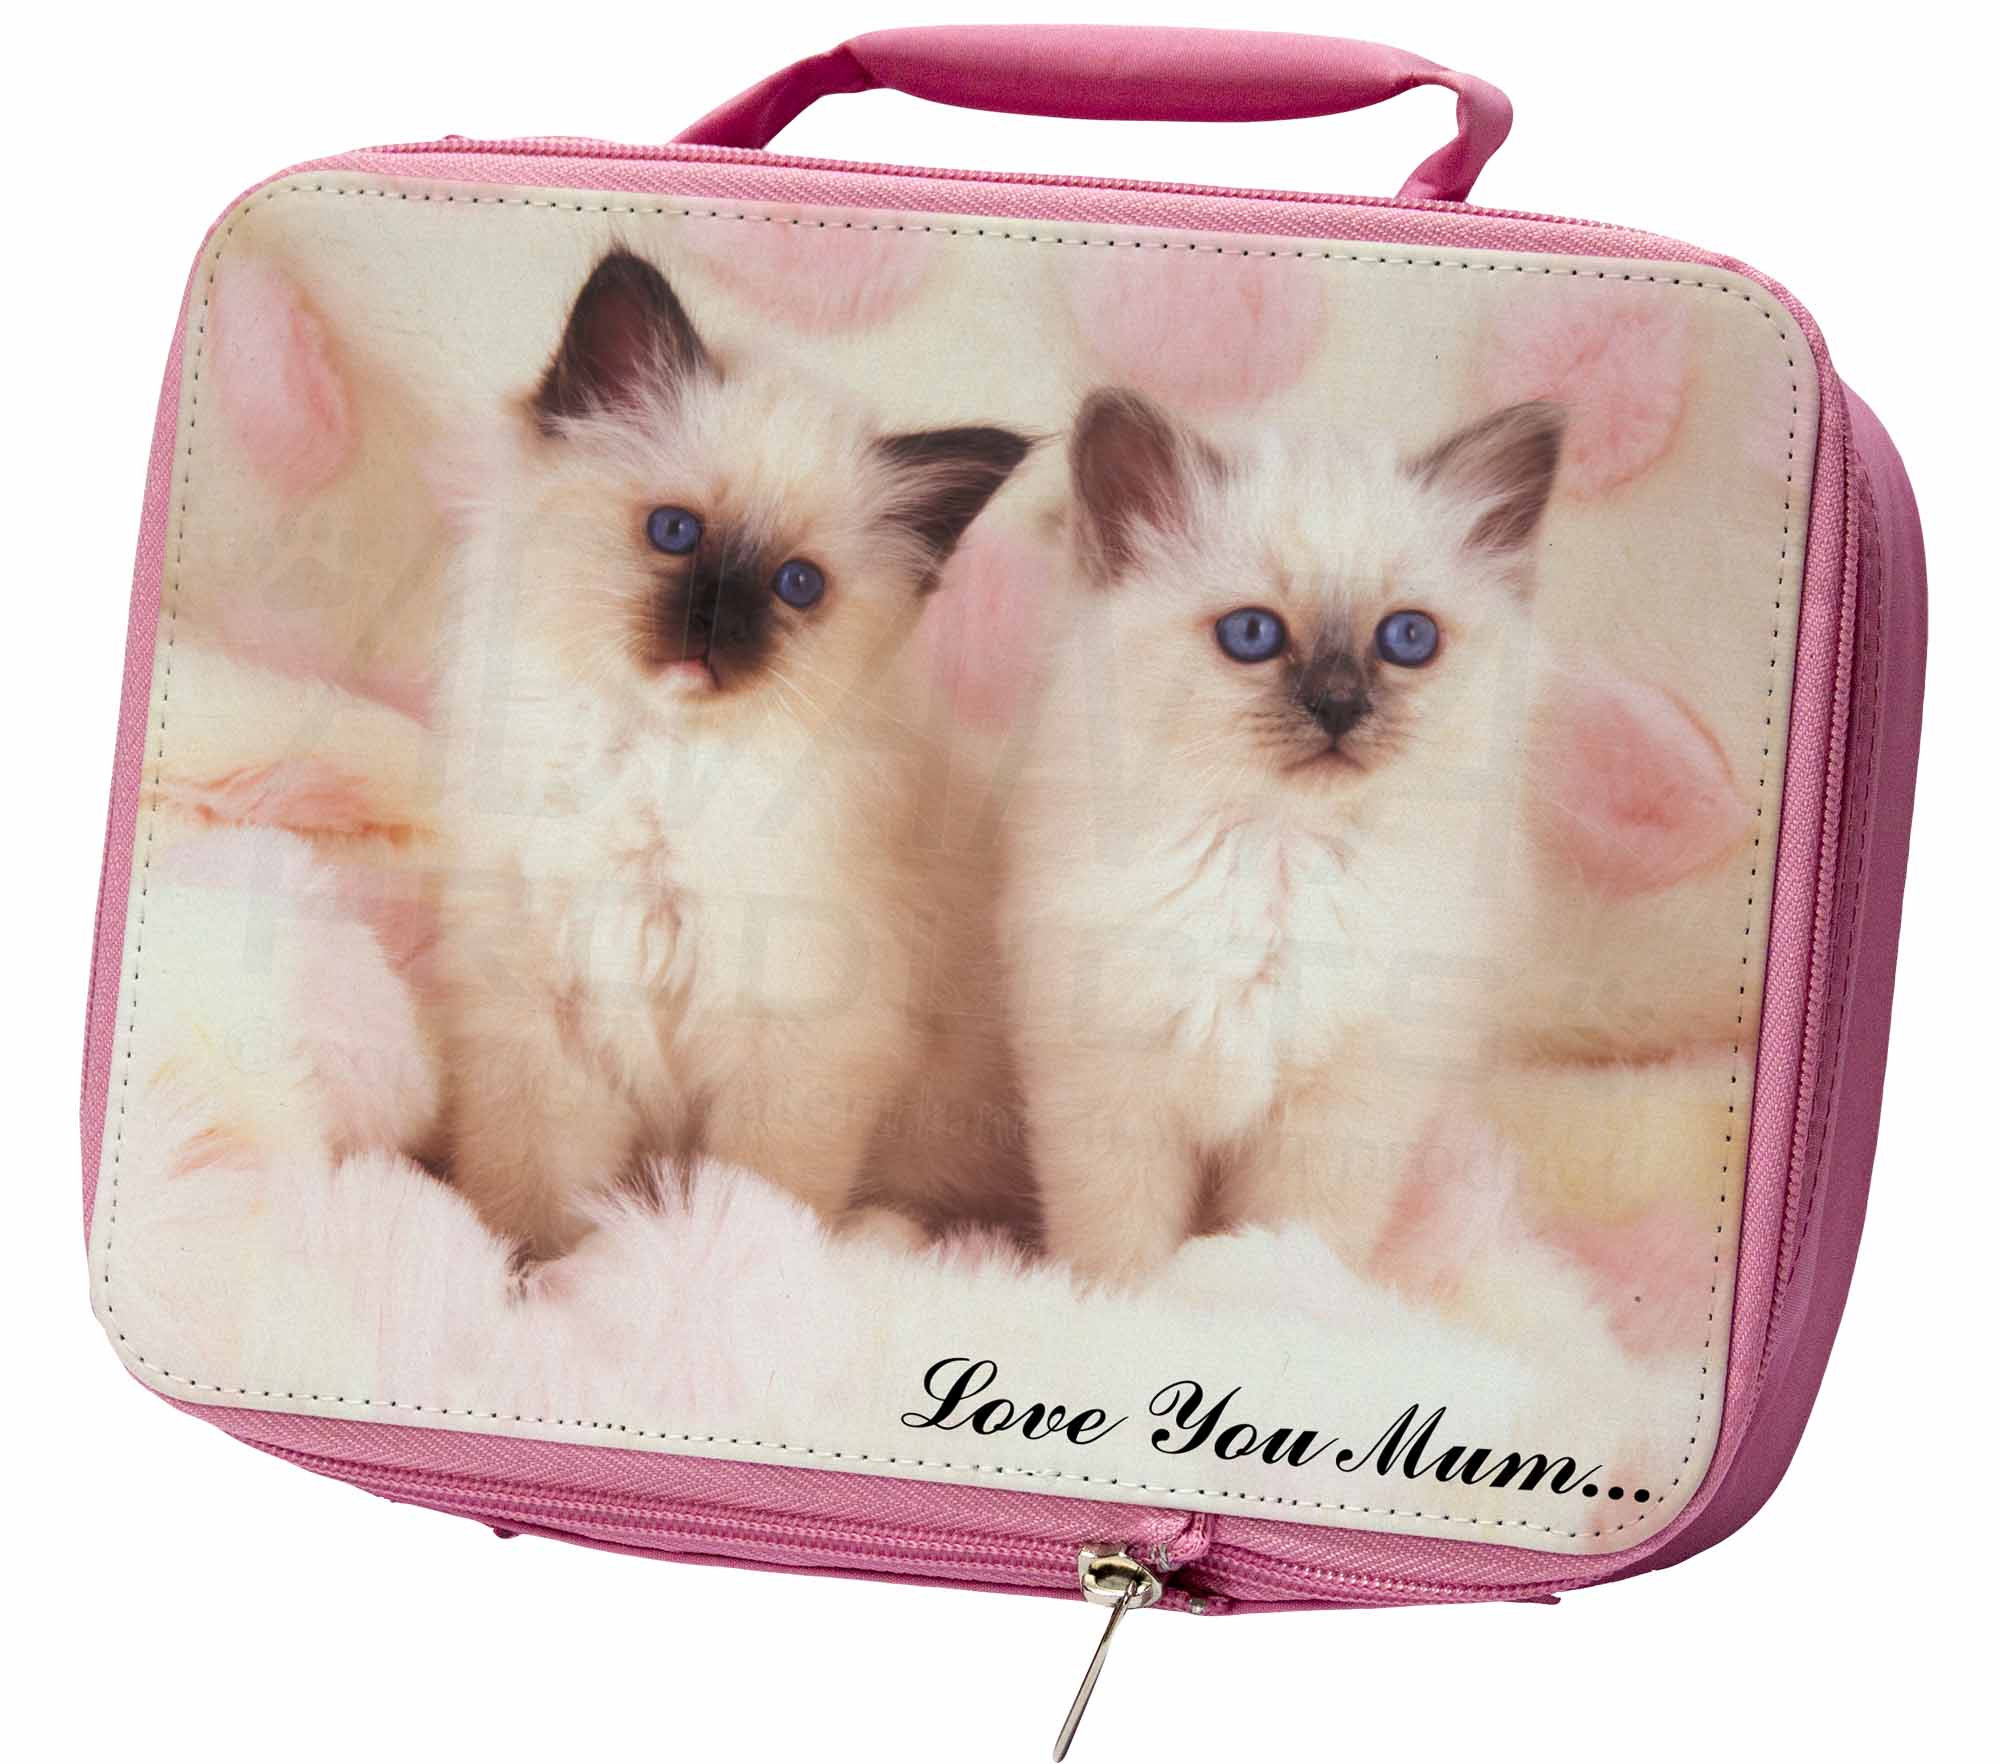 Birman Kittens Cat 'Love You Mum' Insulated Pink Lunch Box, AC-21lymLBP